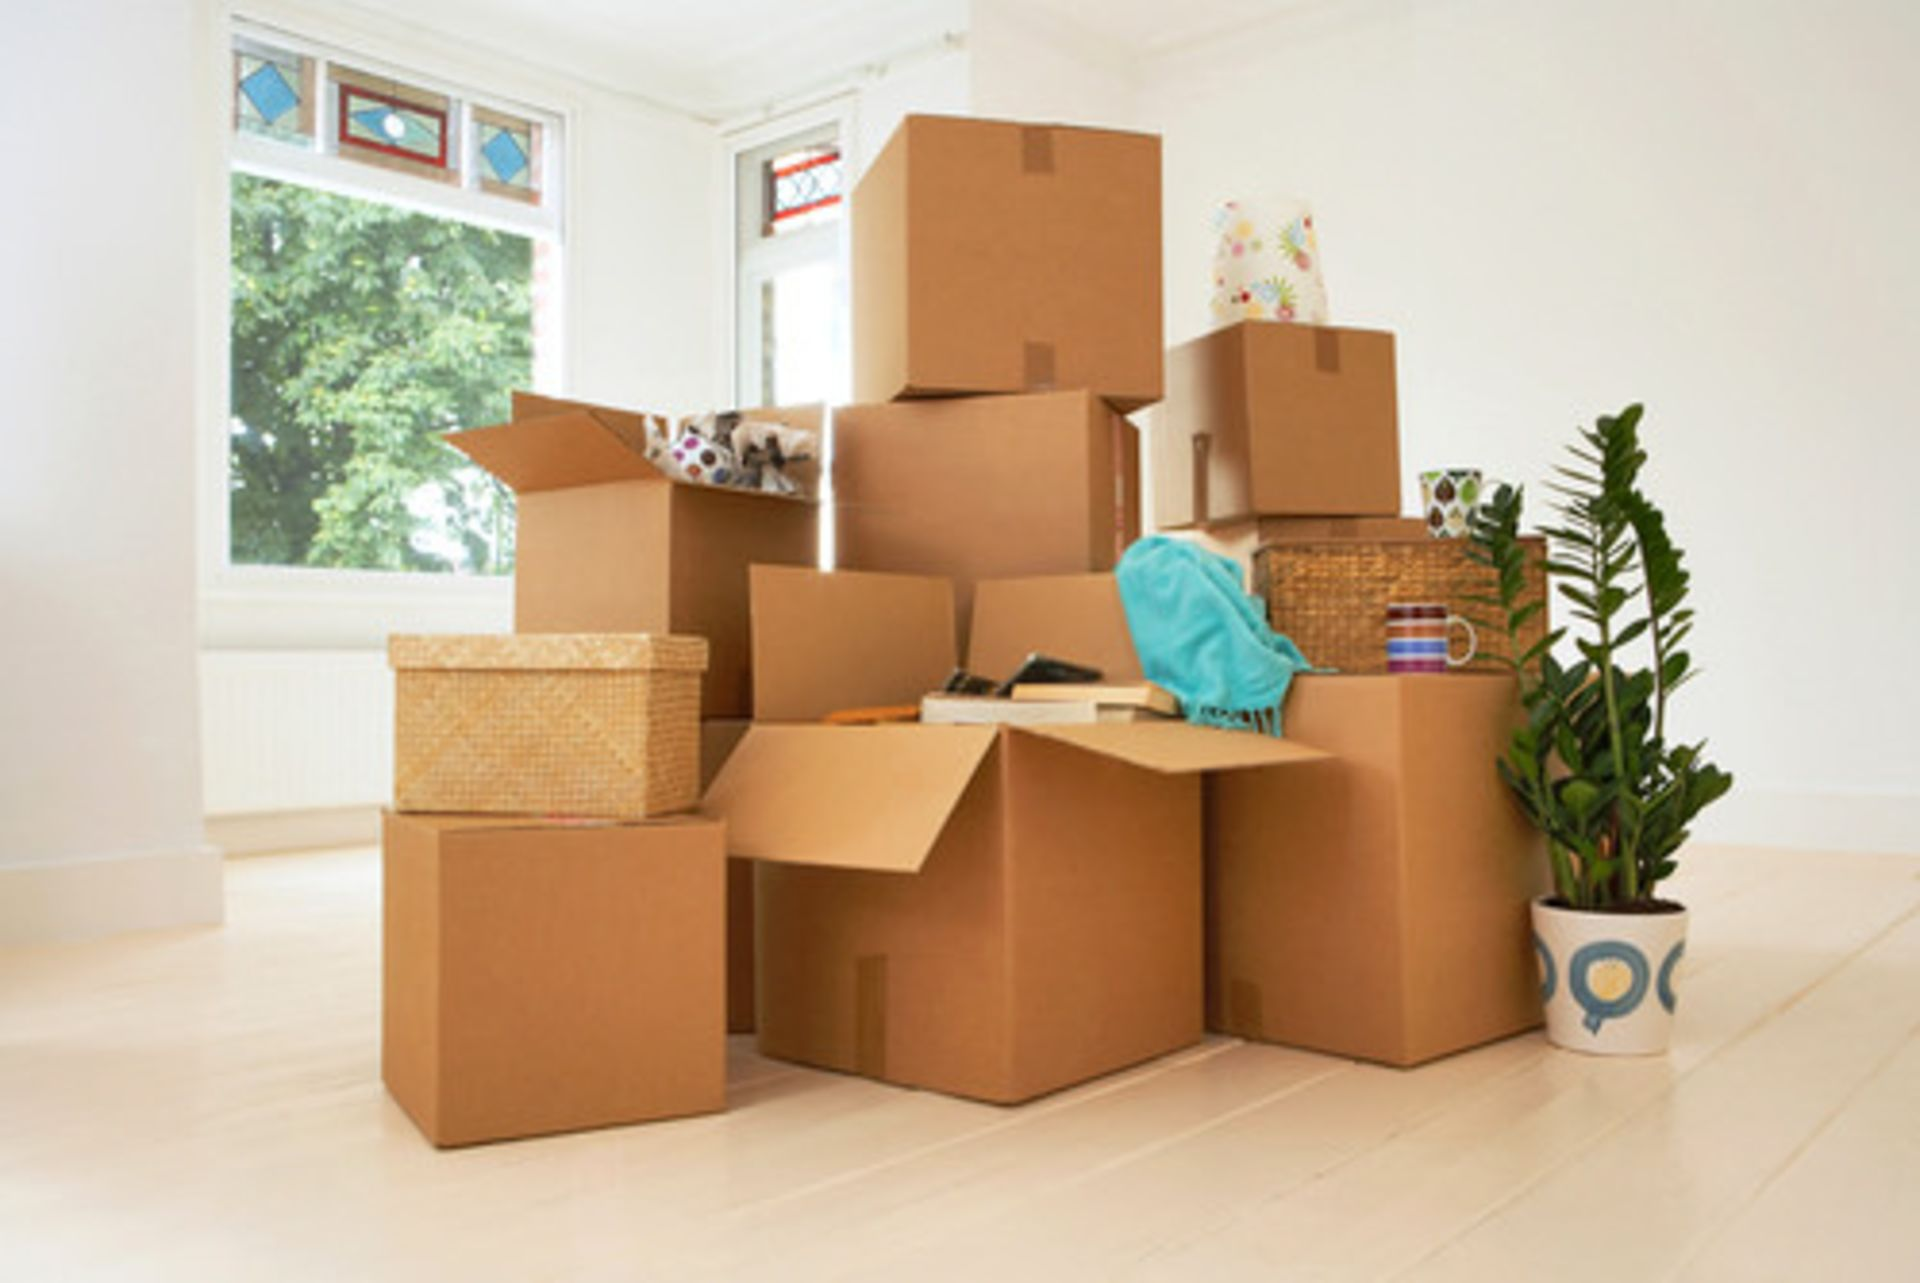 6 Reasons Hiring a Mover is the Right Choice